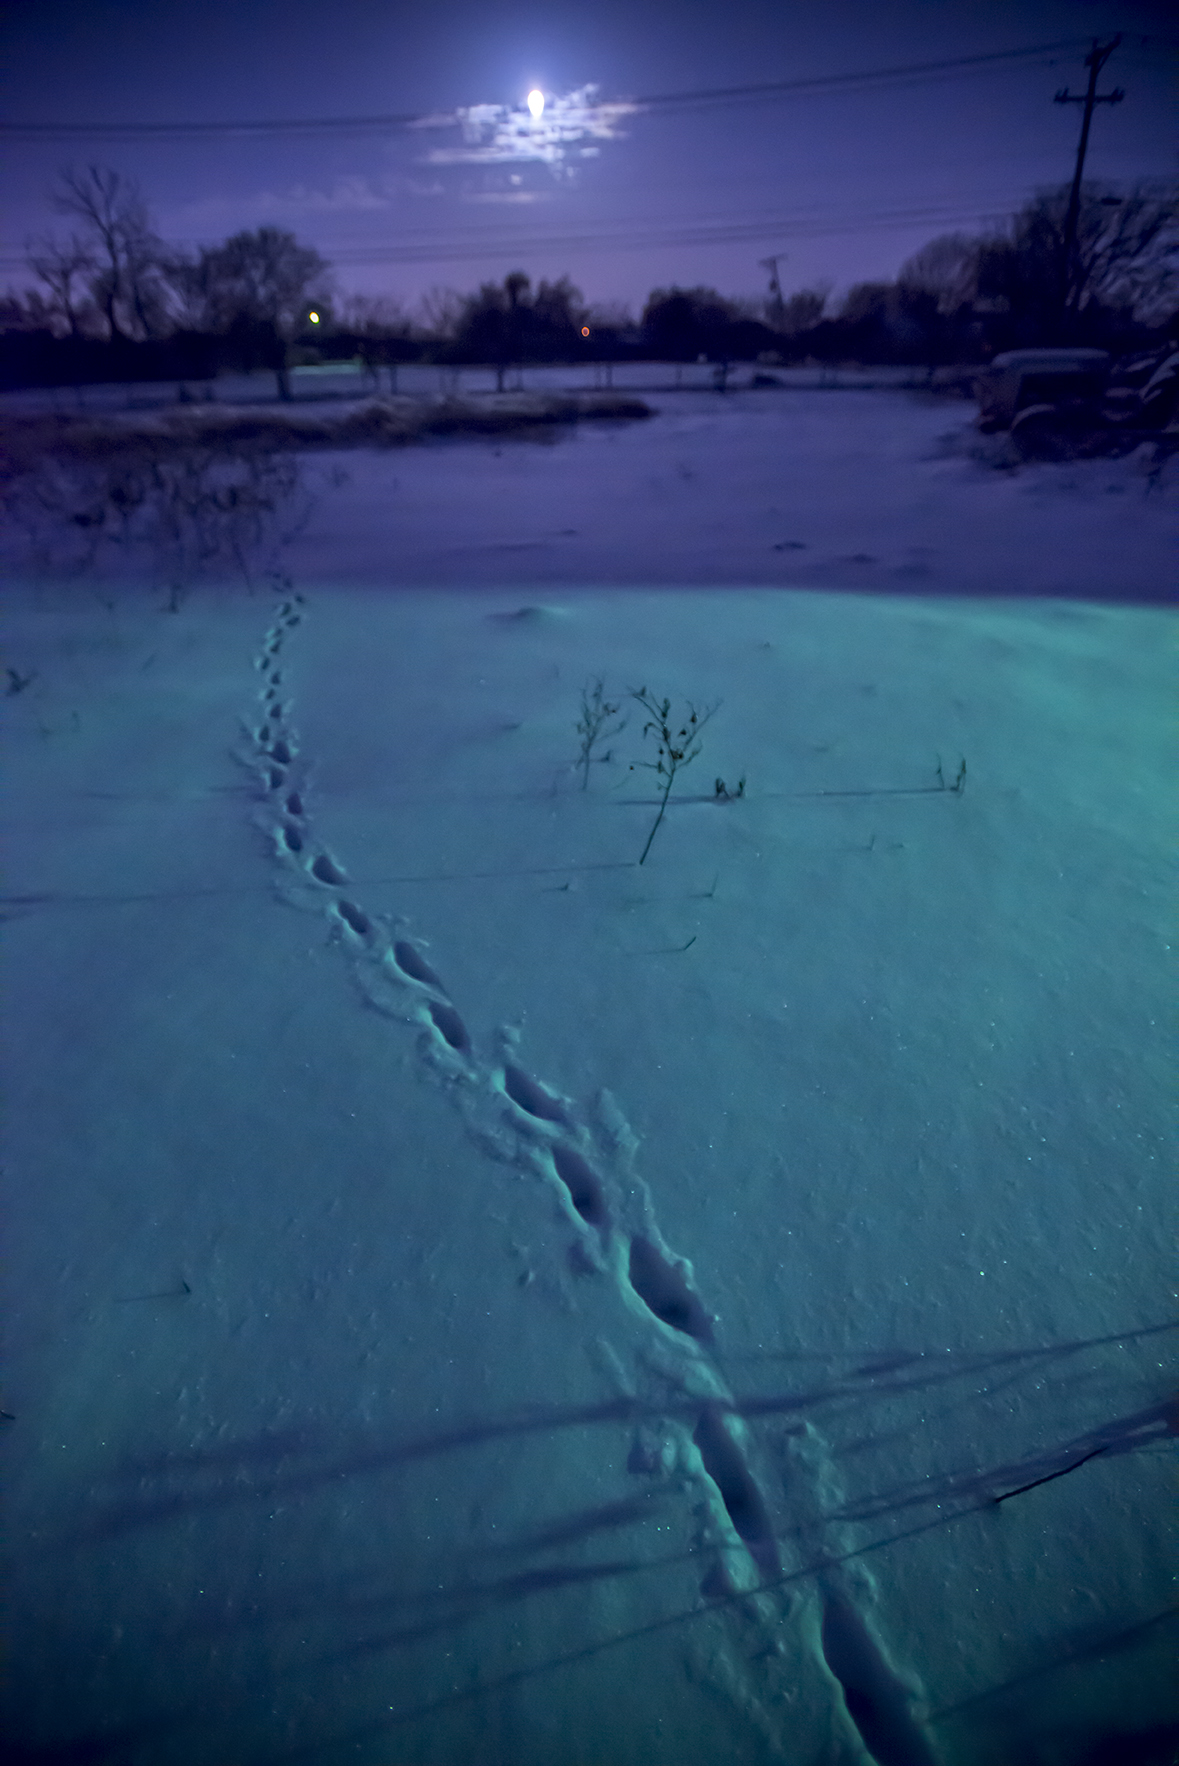 Critter tracks, 5:30 a.m. this morning in my snowy pasture.